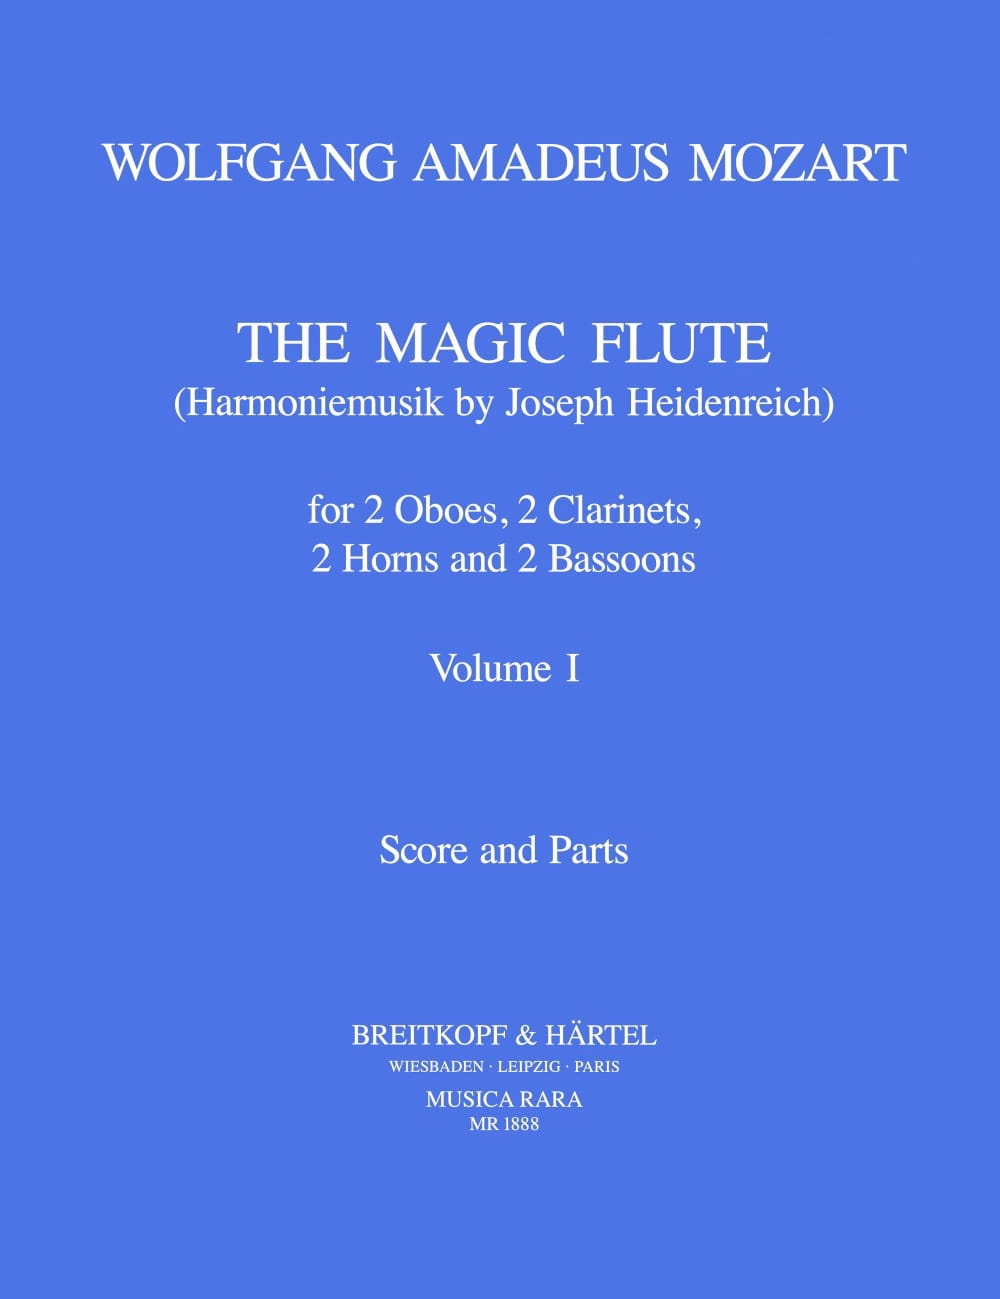 MOZART - The magic flute Volume 1 - Harmoniemusik - Score parts - Partition - di-arezzo.co.uk